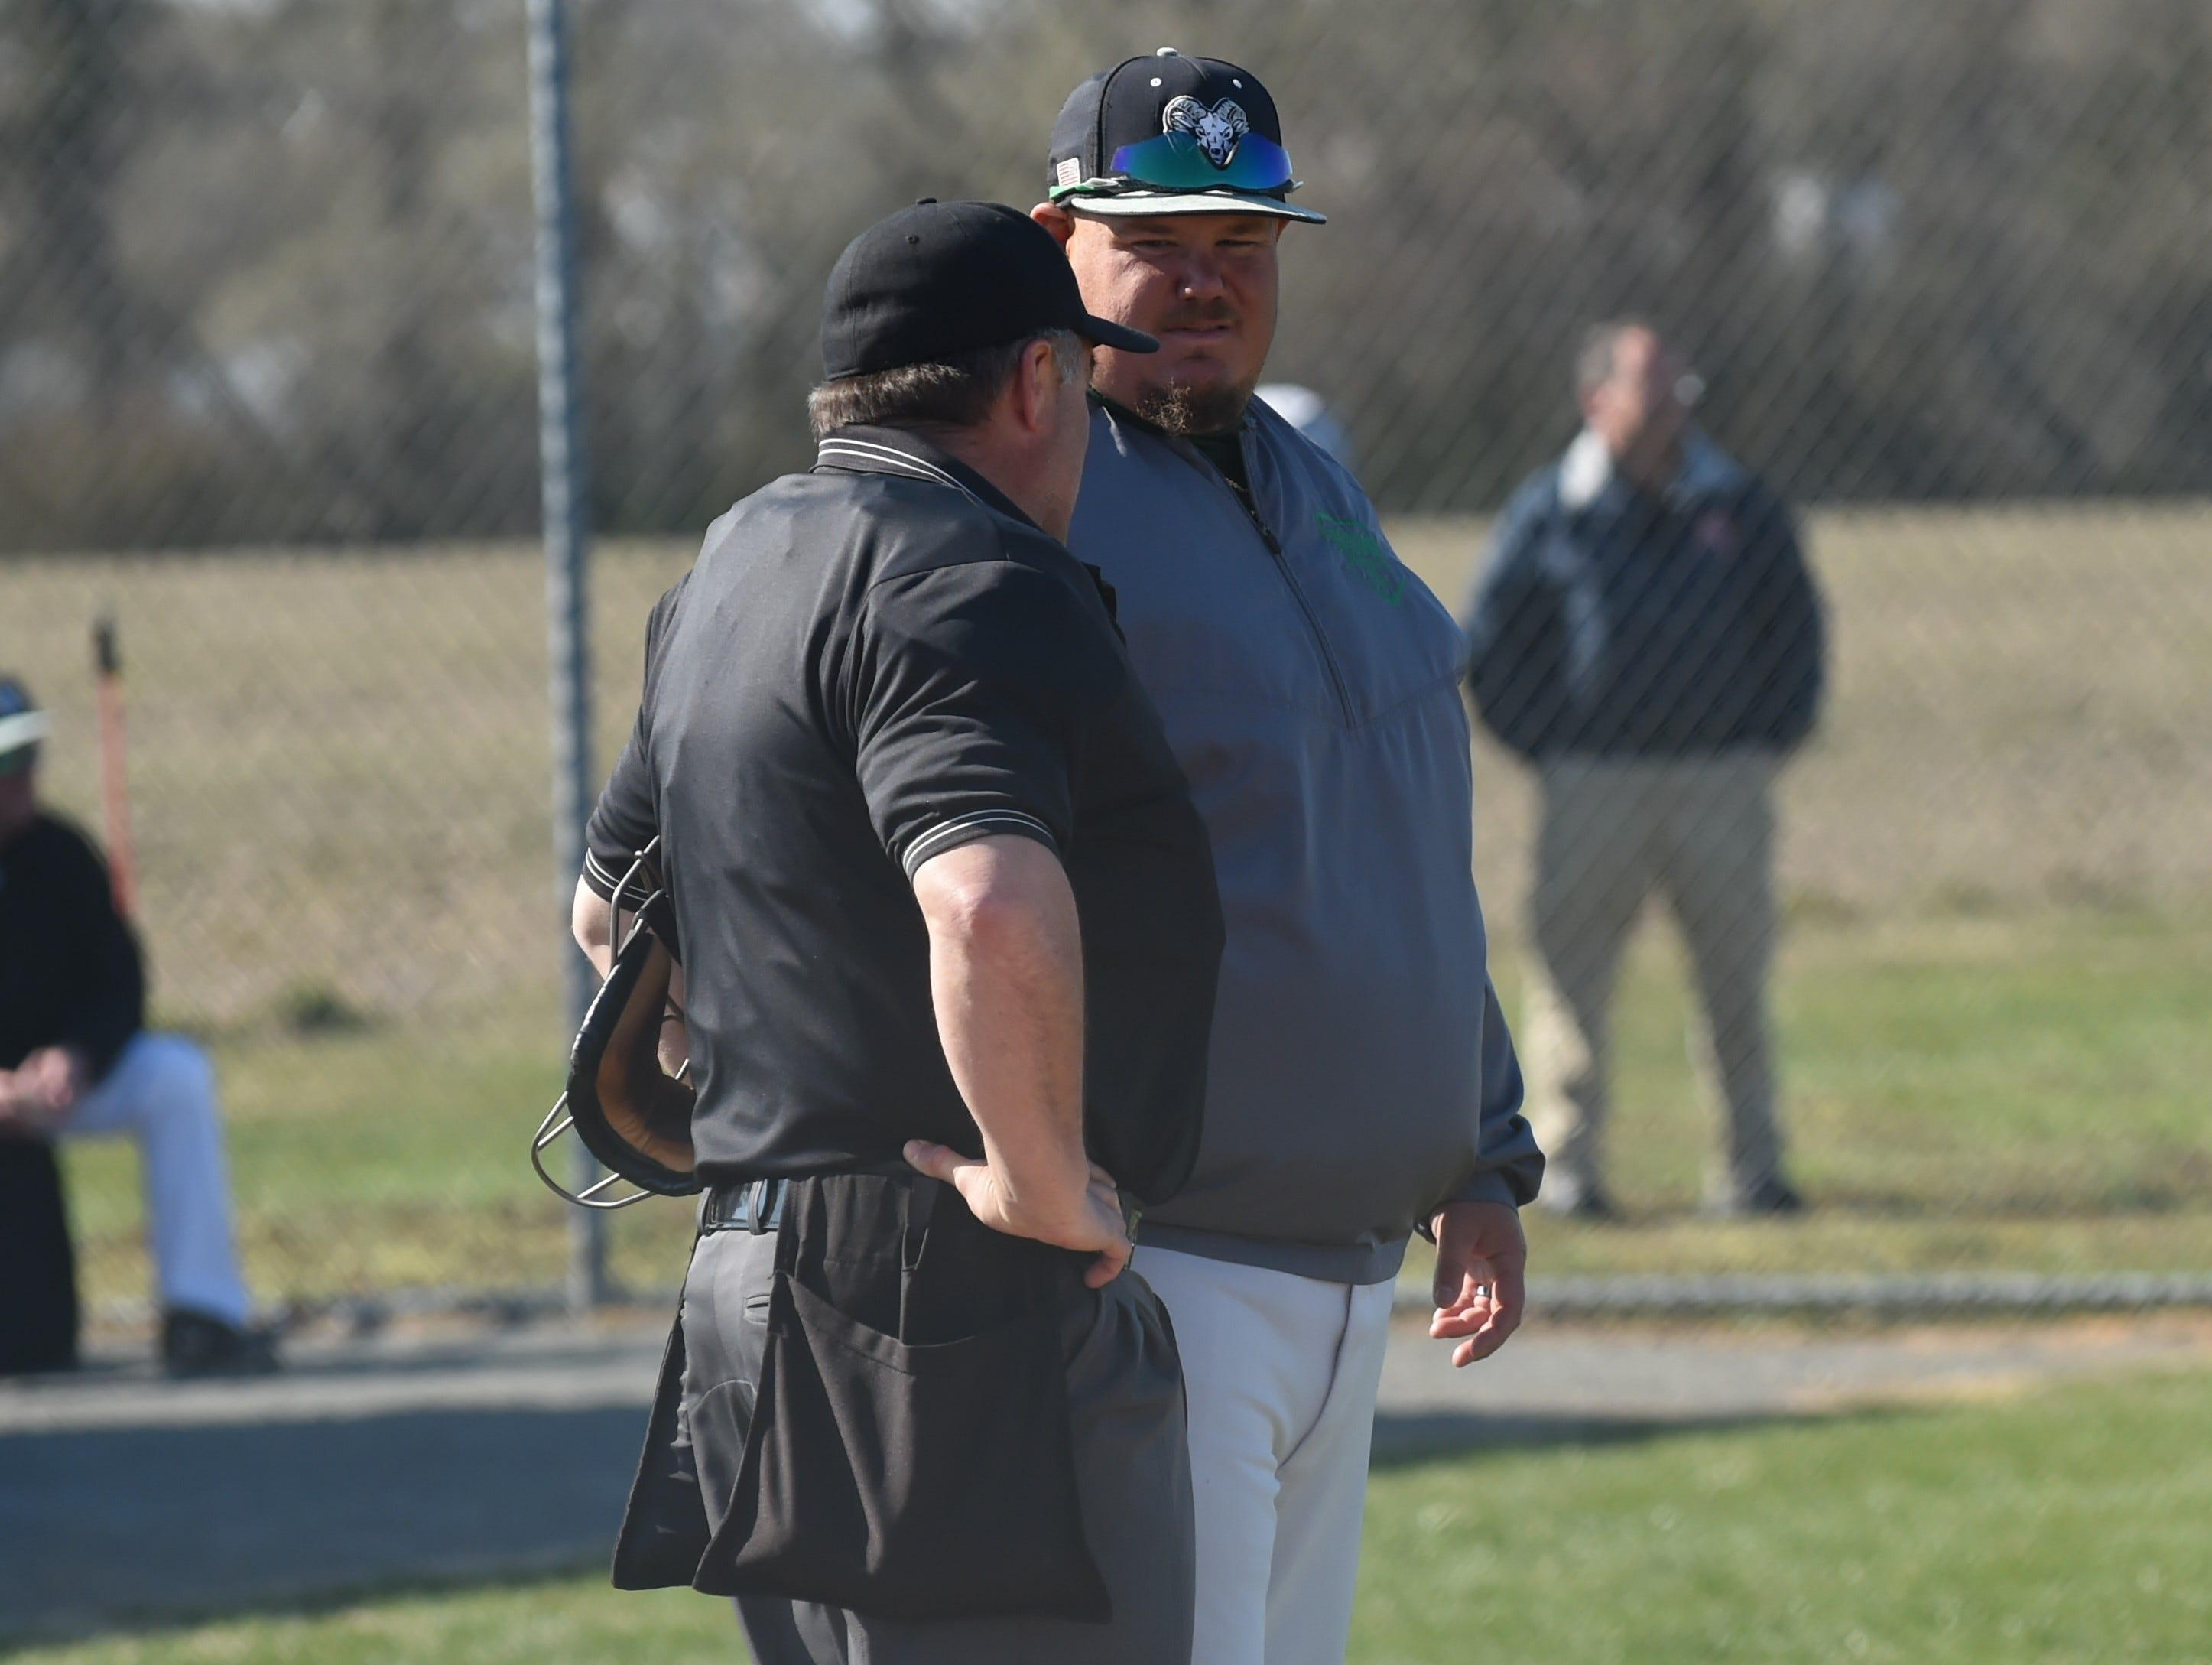 Parkside head coach Kyle Daubert speaks with an umpire on Wednesday, April 3, 2019.